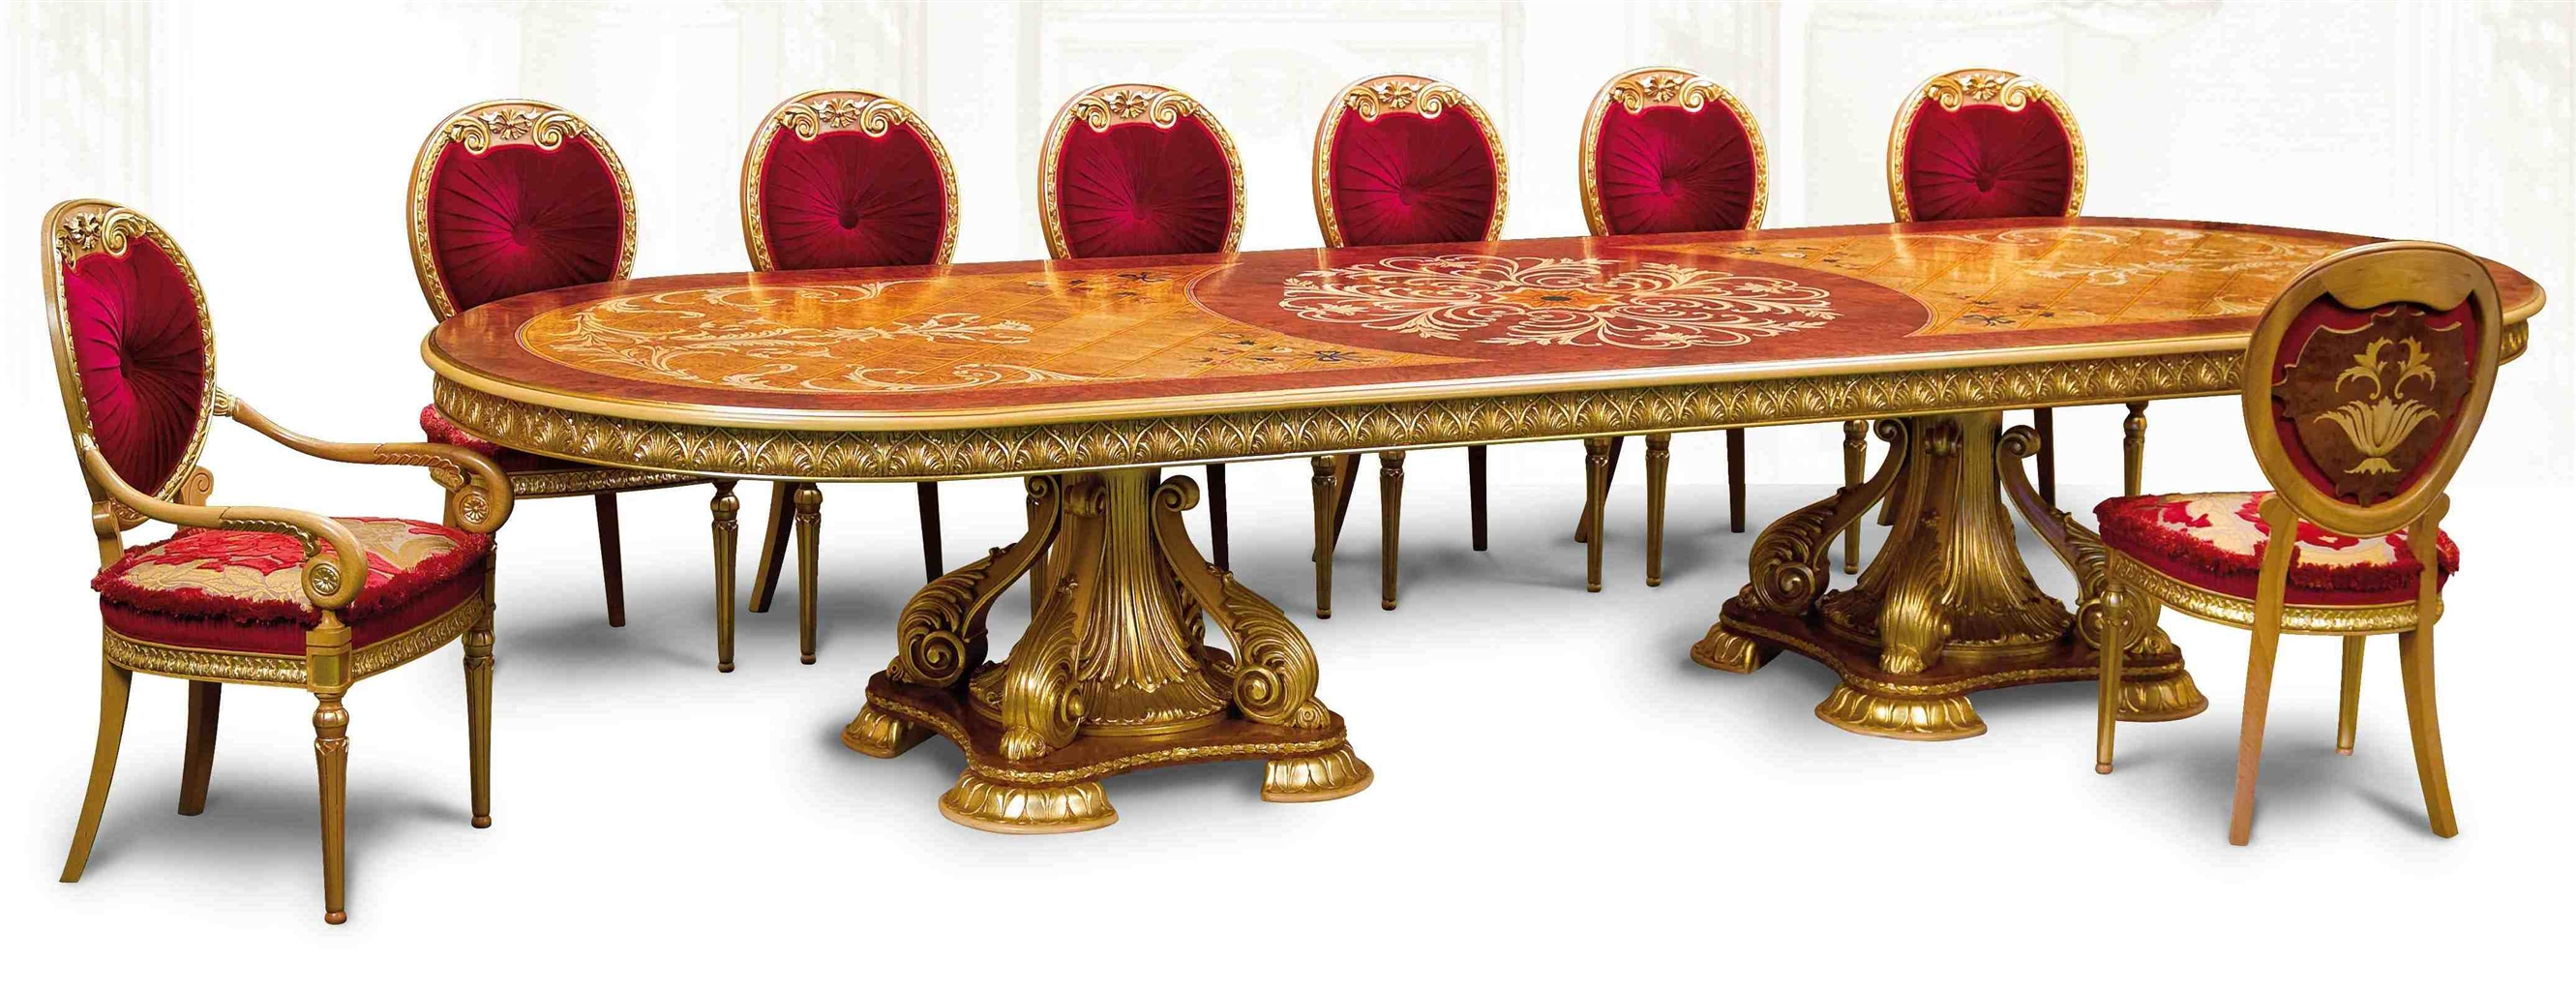 empire style dining table seating for 26 people greenwich ri